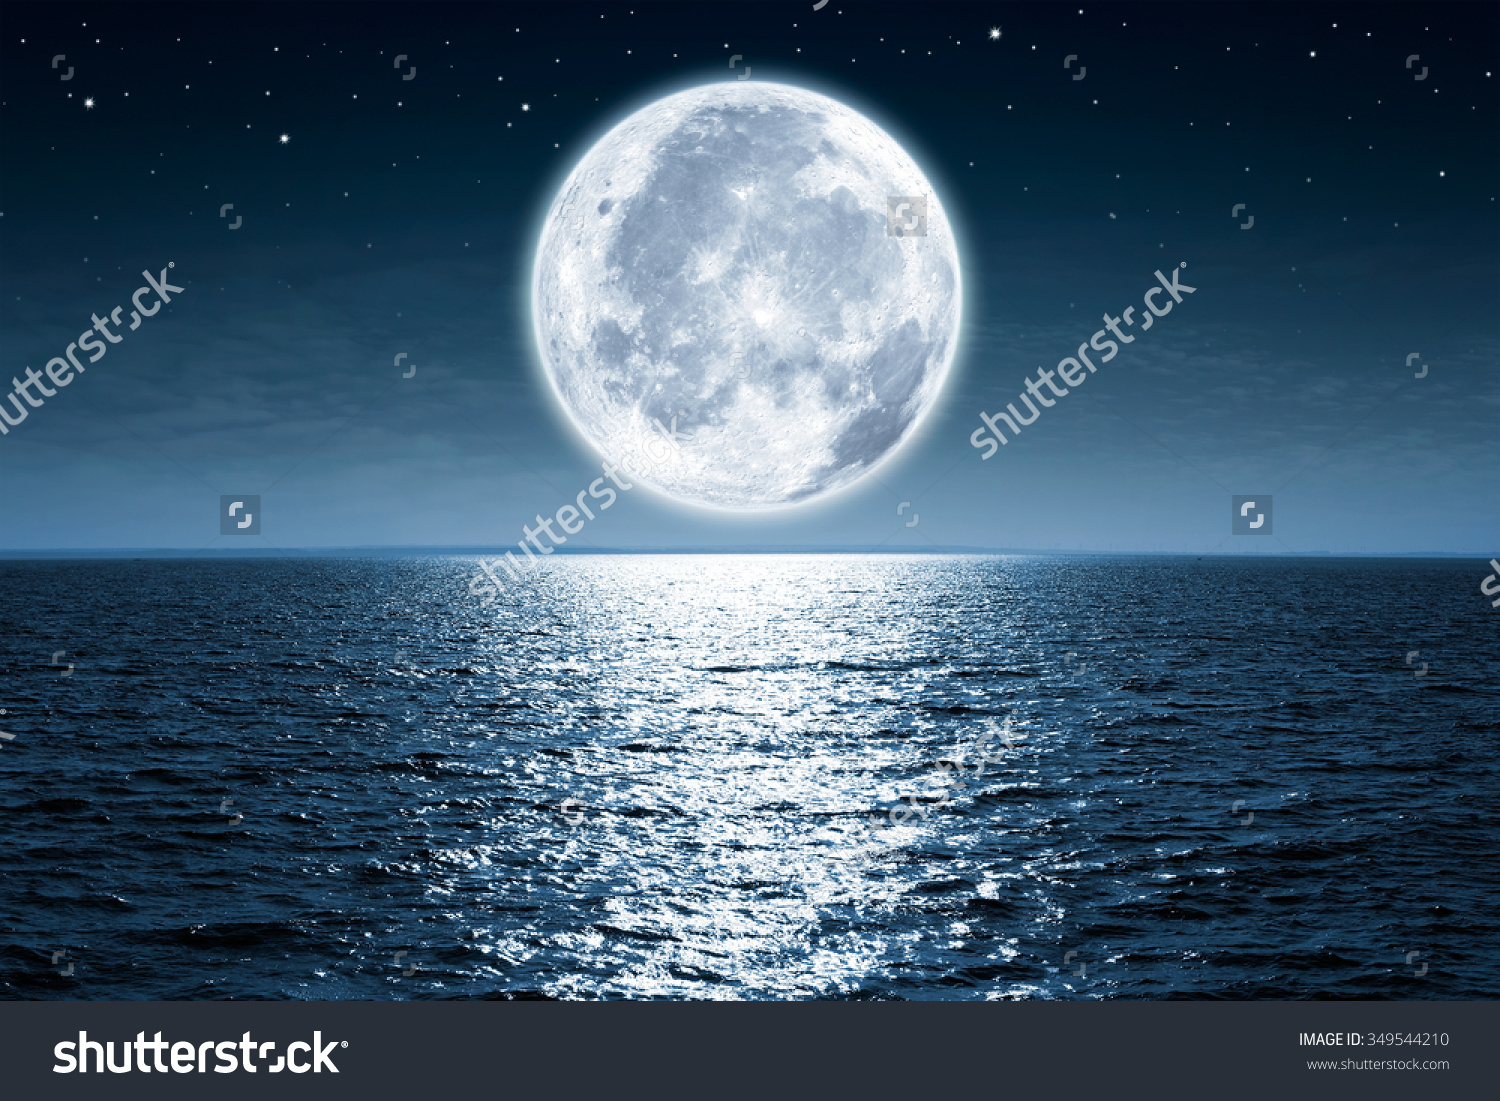 Full Moon Rising Over Empty Ocean Stock Photo 349544210.